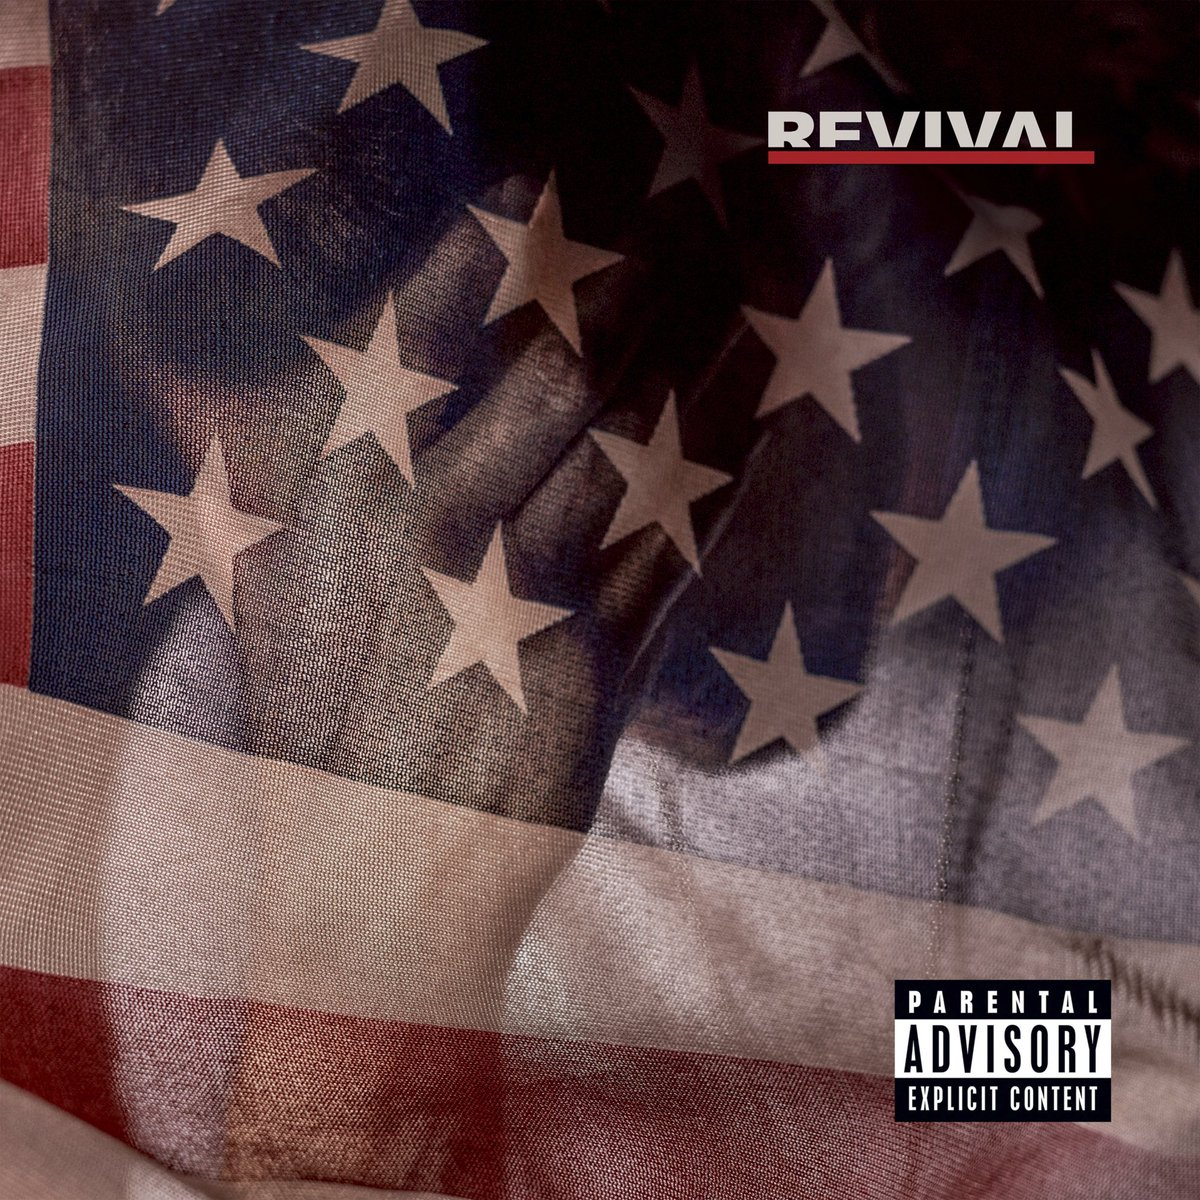 .@Eminem's #Revival shows his growth  https://t.co/BzVMkq2XLN #Review